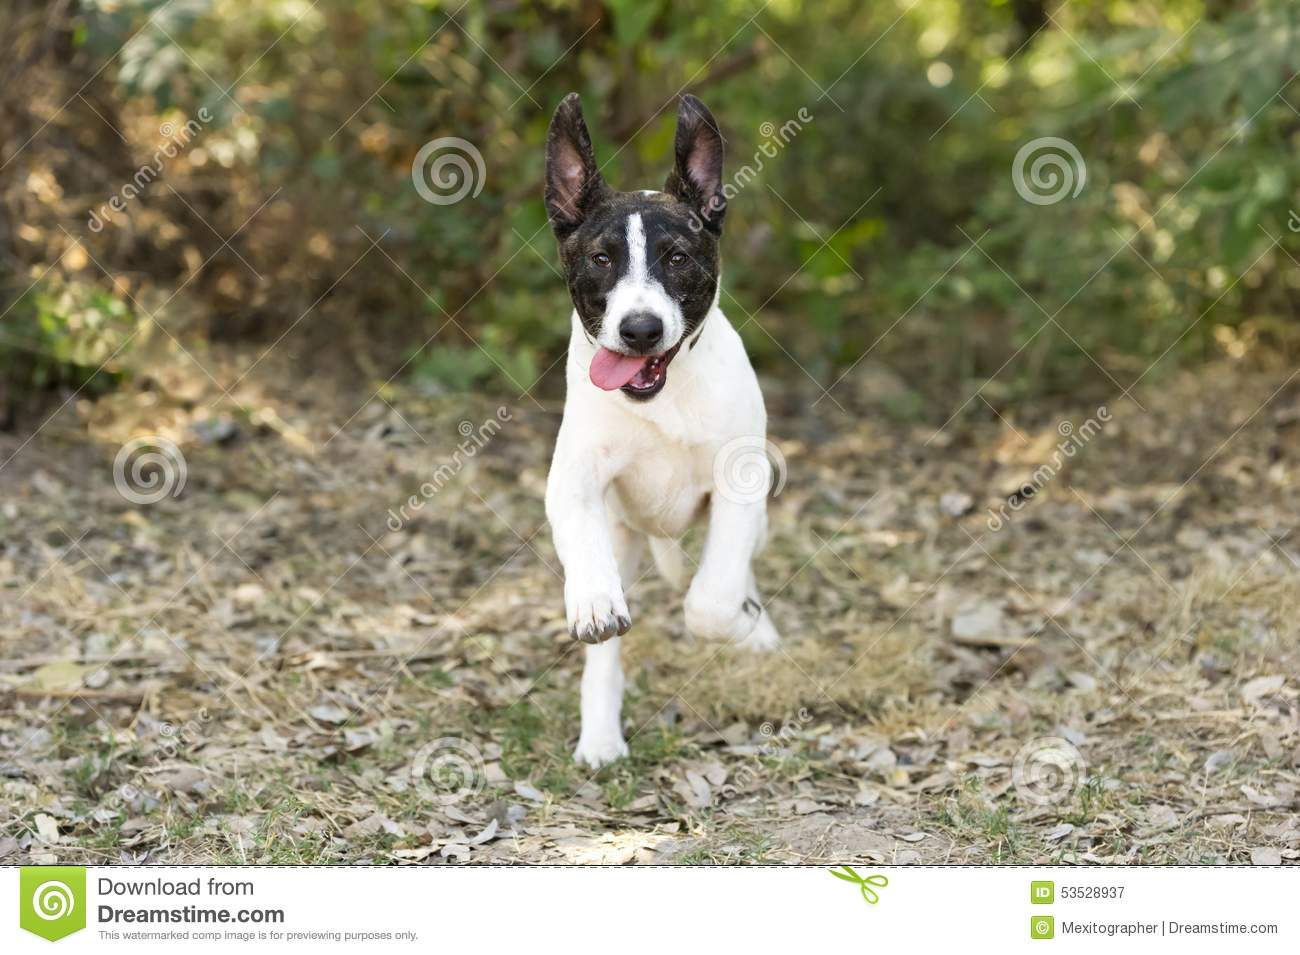 Excited Dog Running